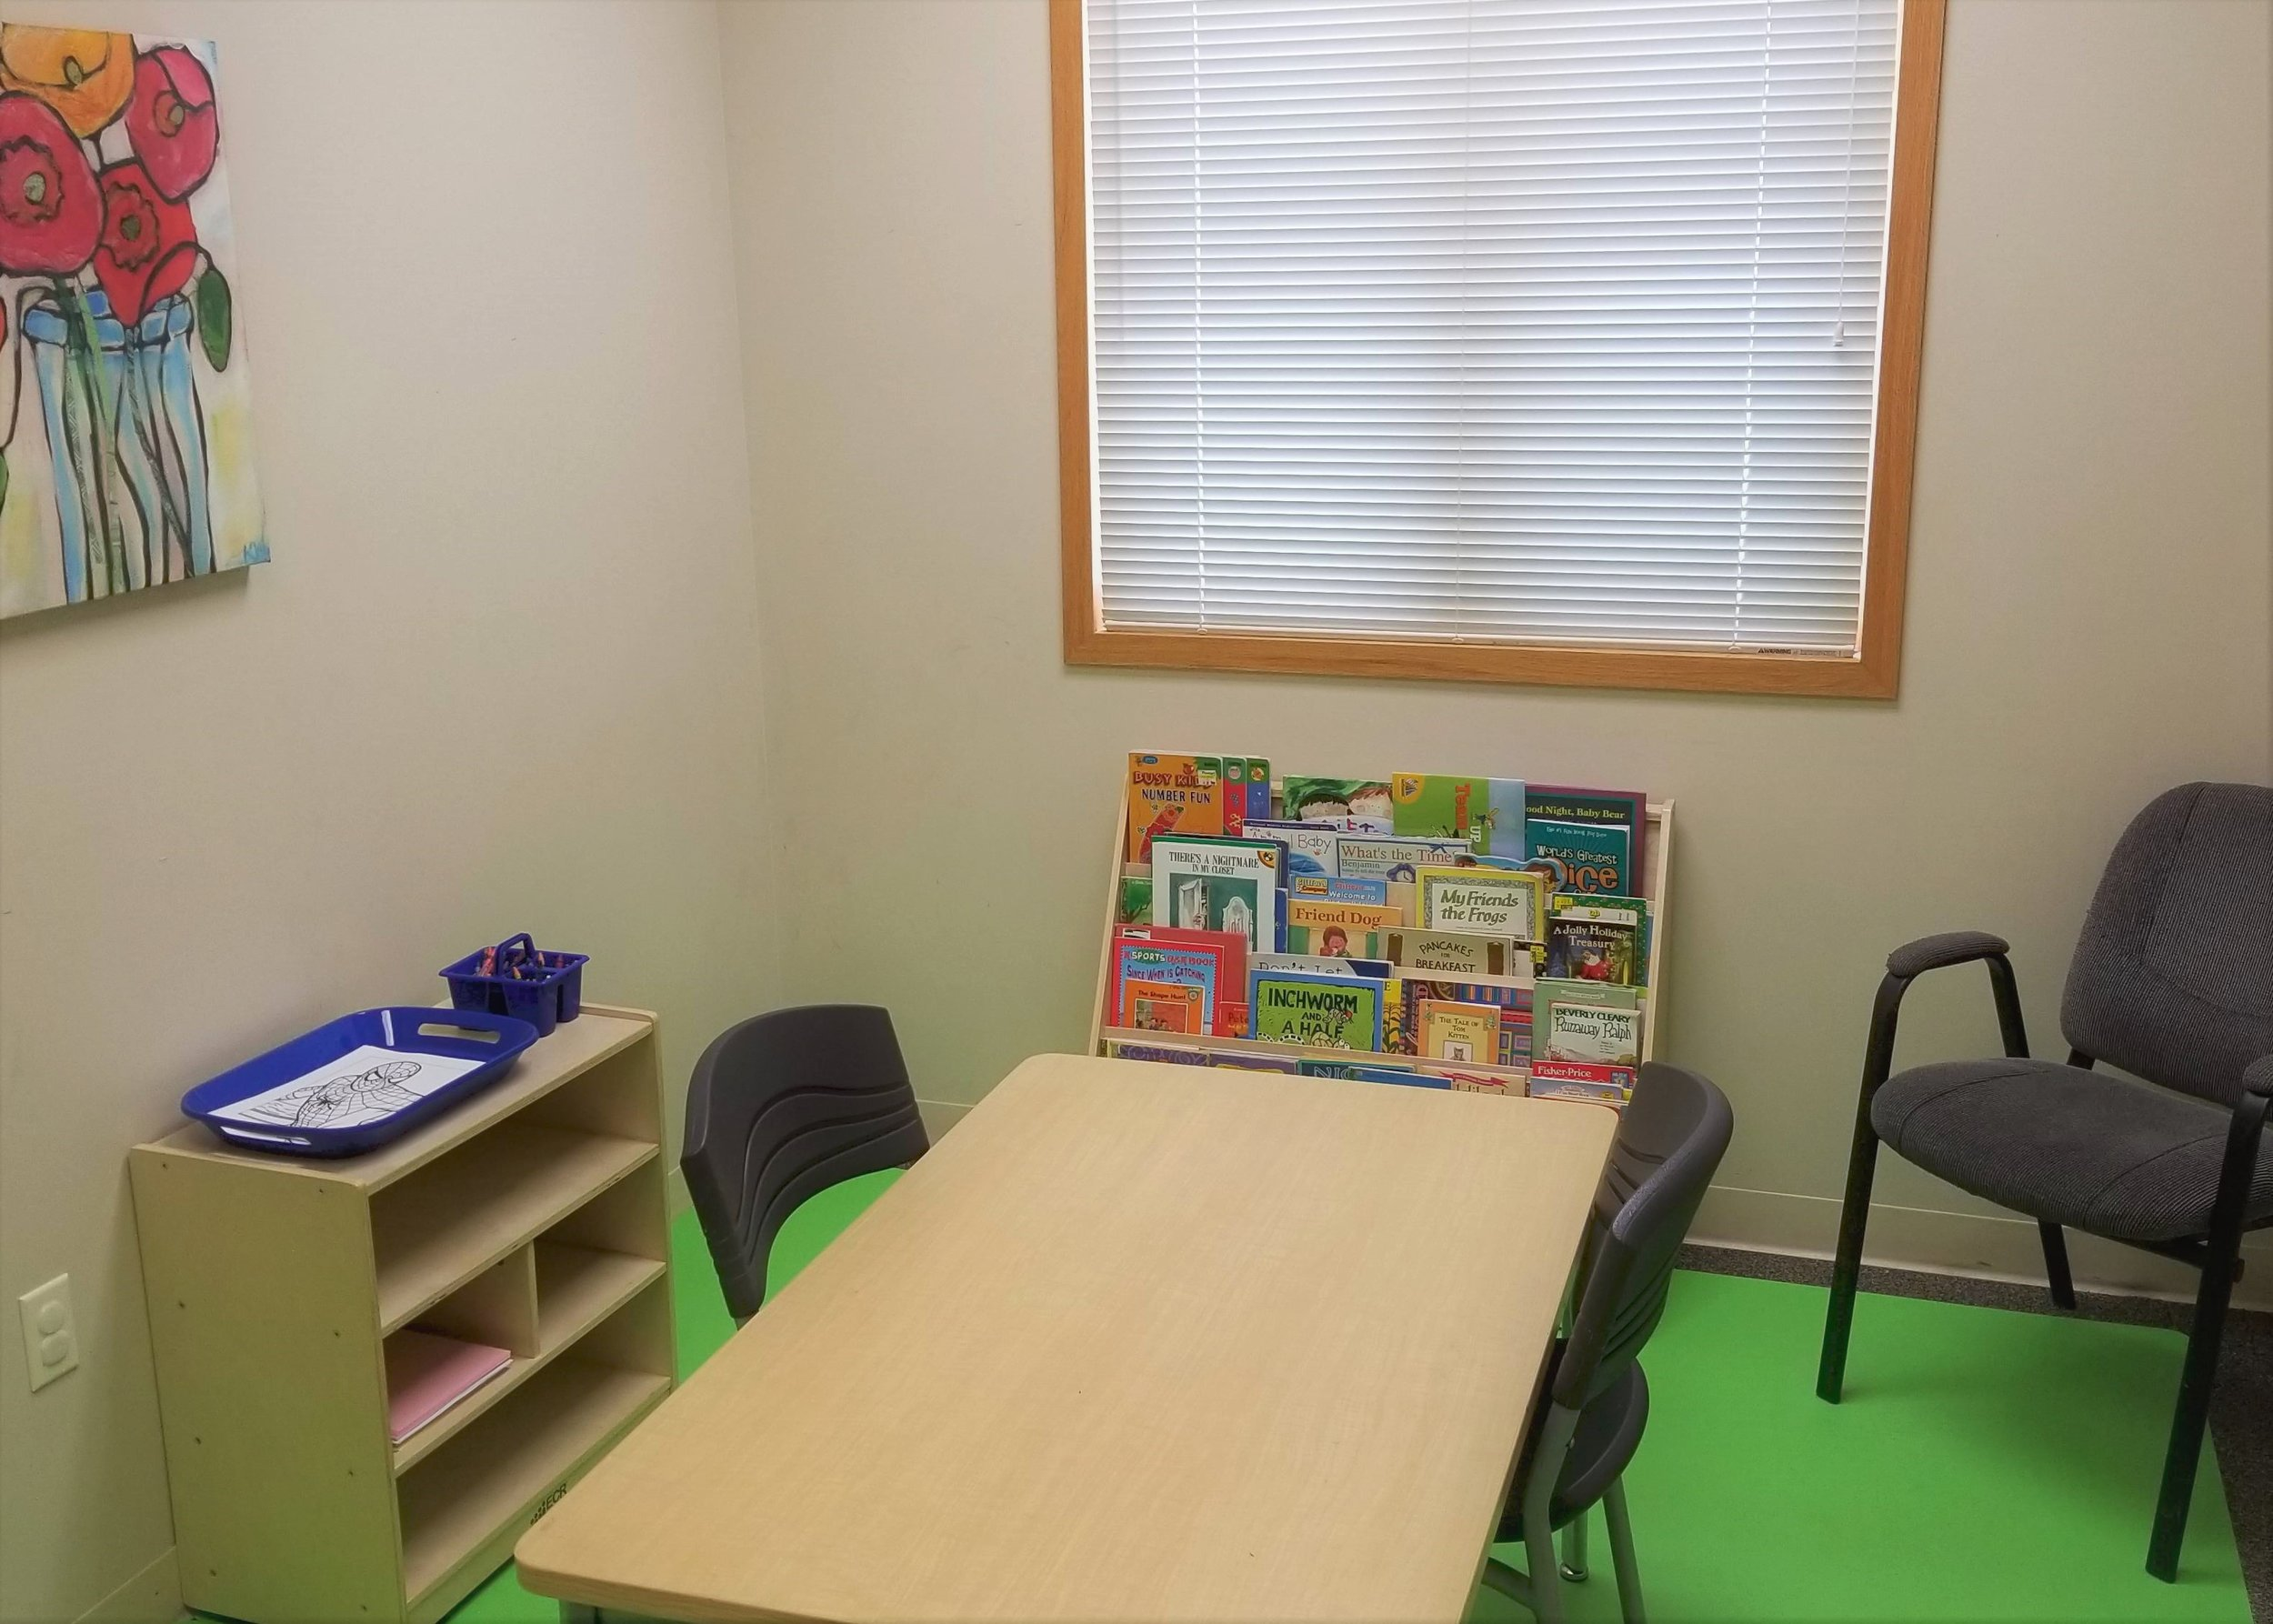 Plenty to do - Our family centers offer multiple activities in which you can interact with your loved ones. We provide toys, games, puzzles, art supplies, books and even smart televisions that can provide appropriate programming for you and your family.